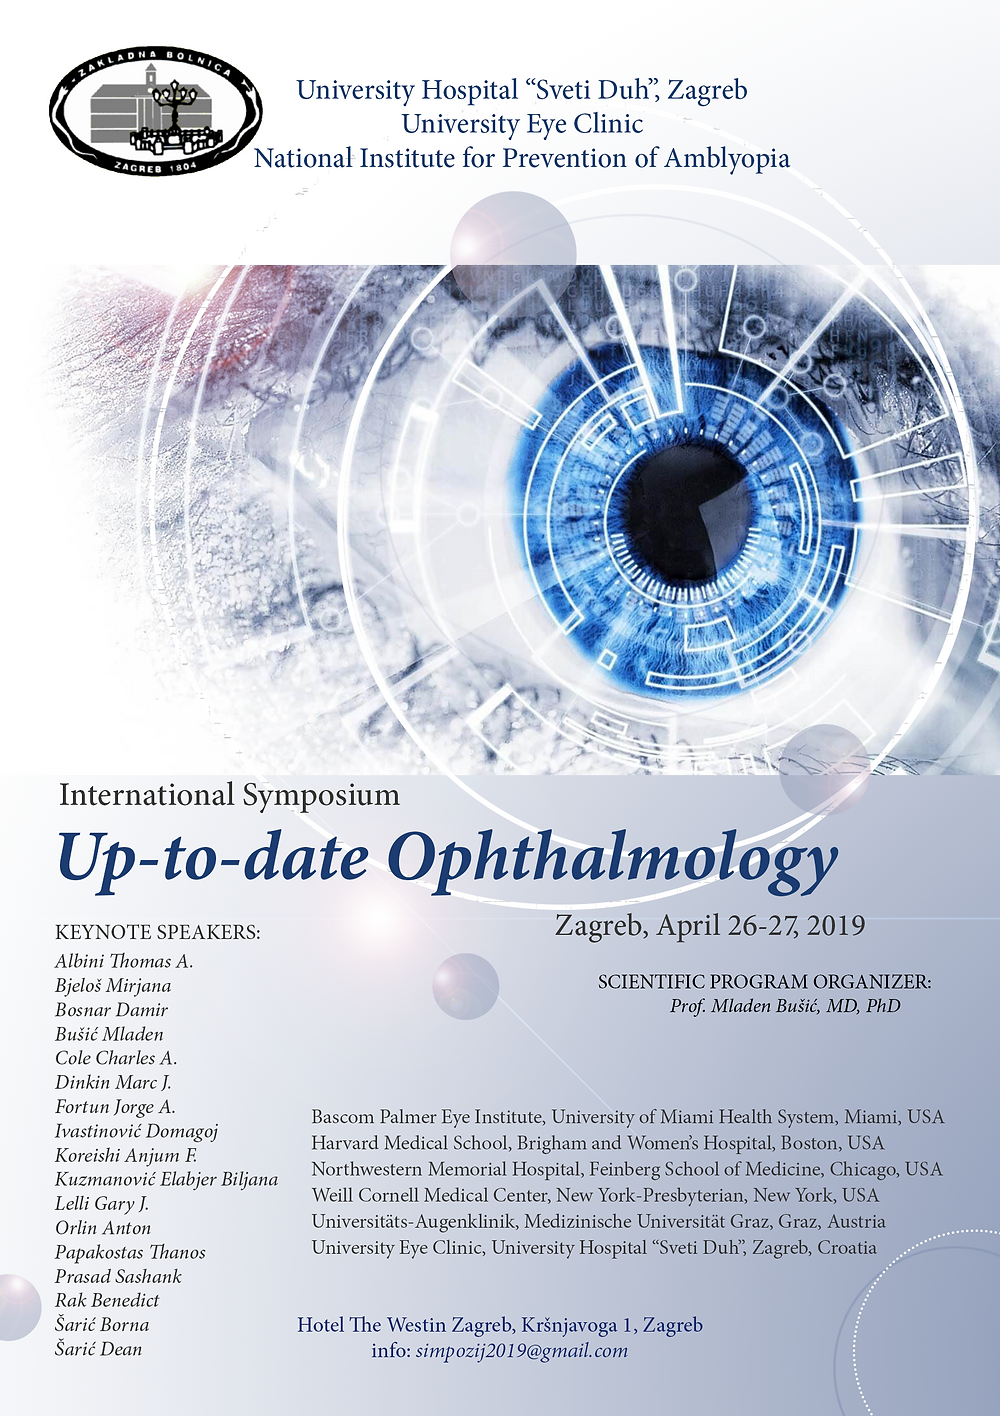 Up-to date Ophthalmology